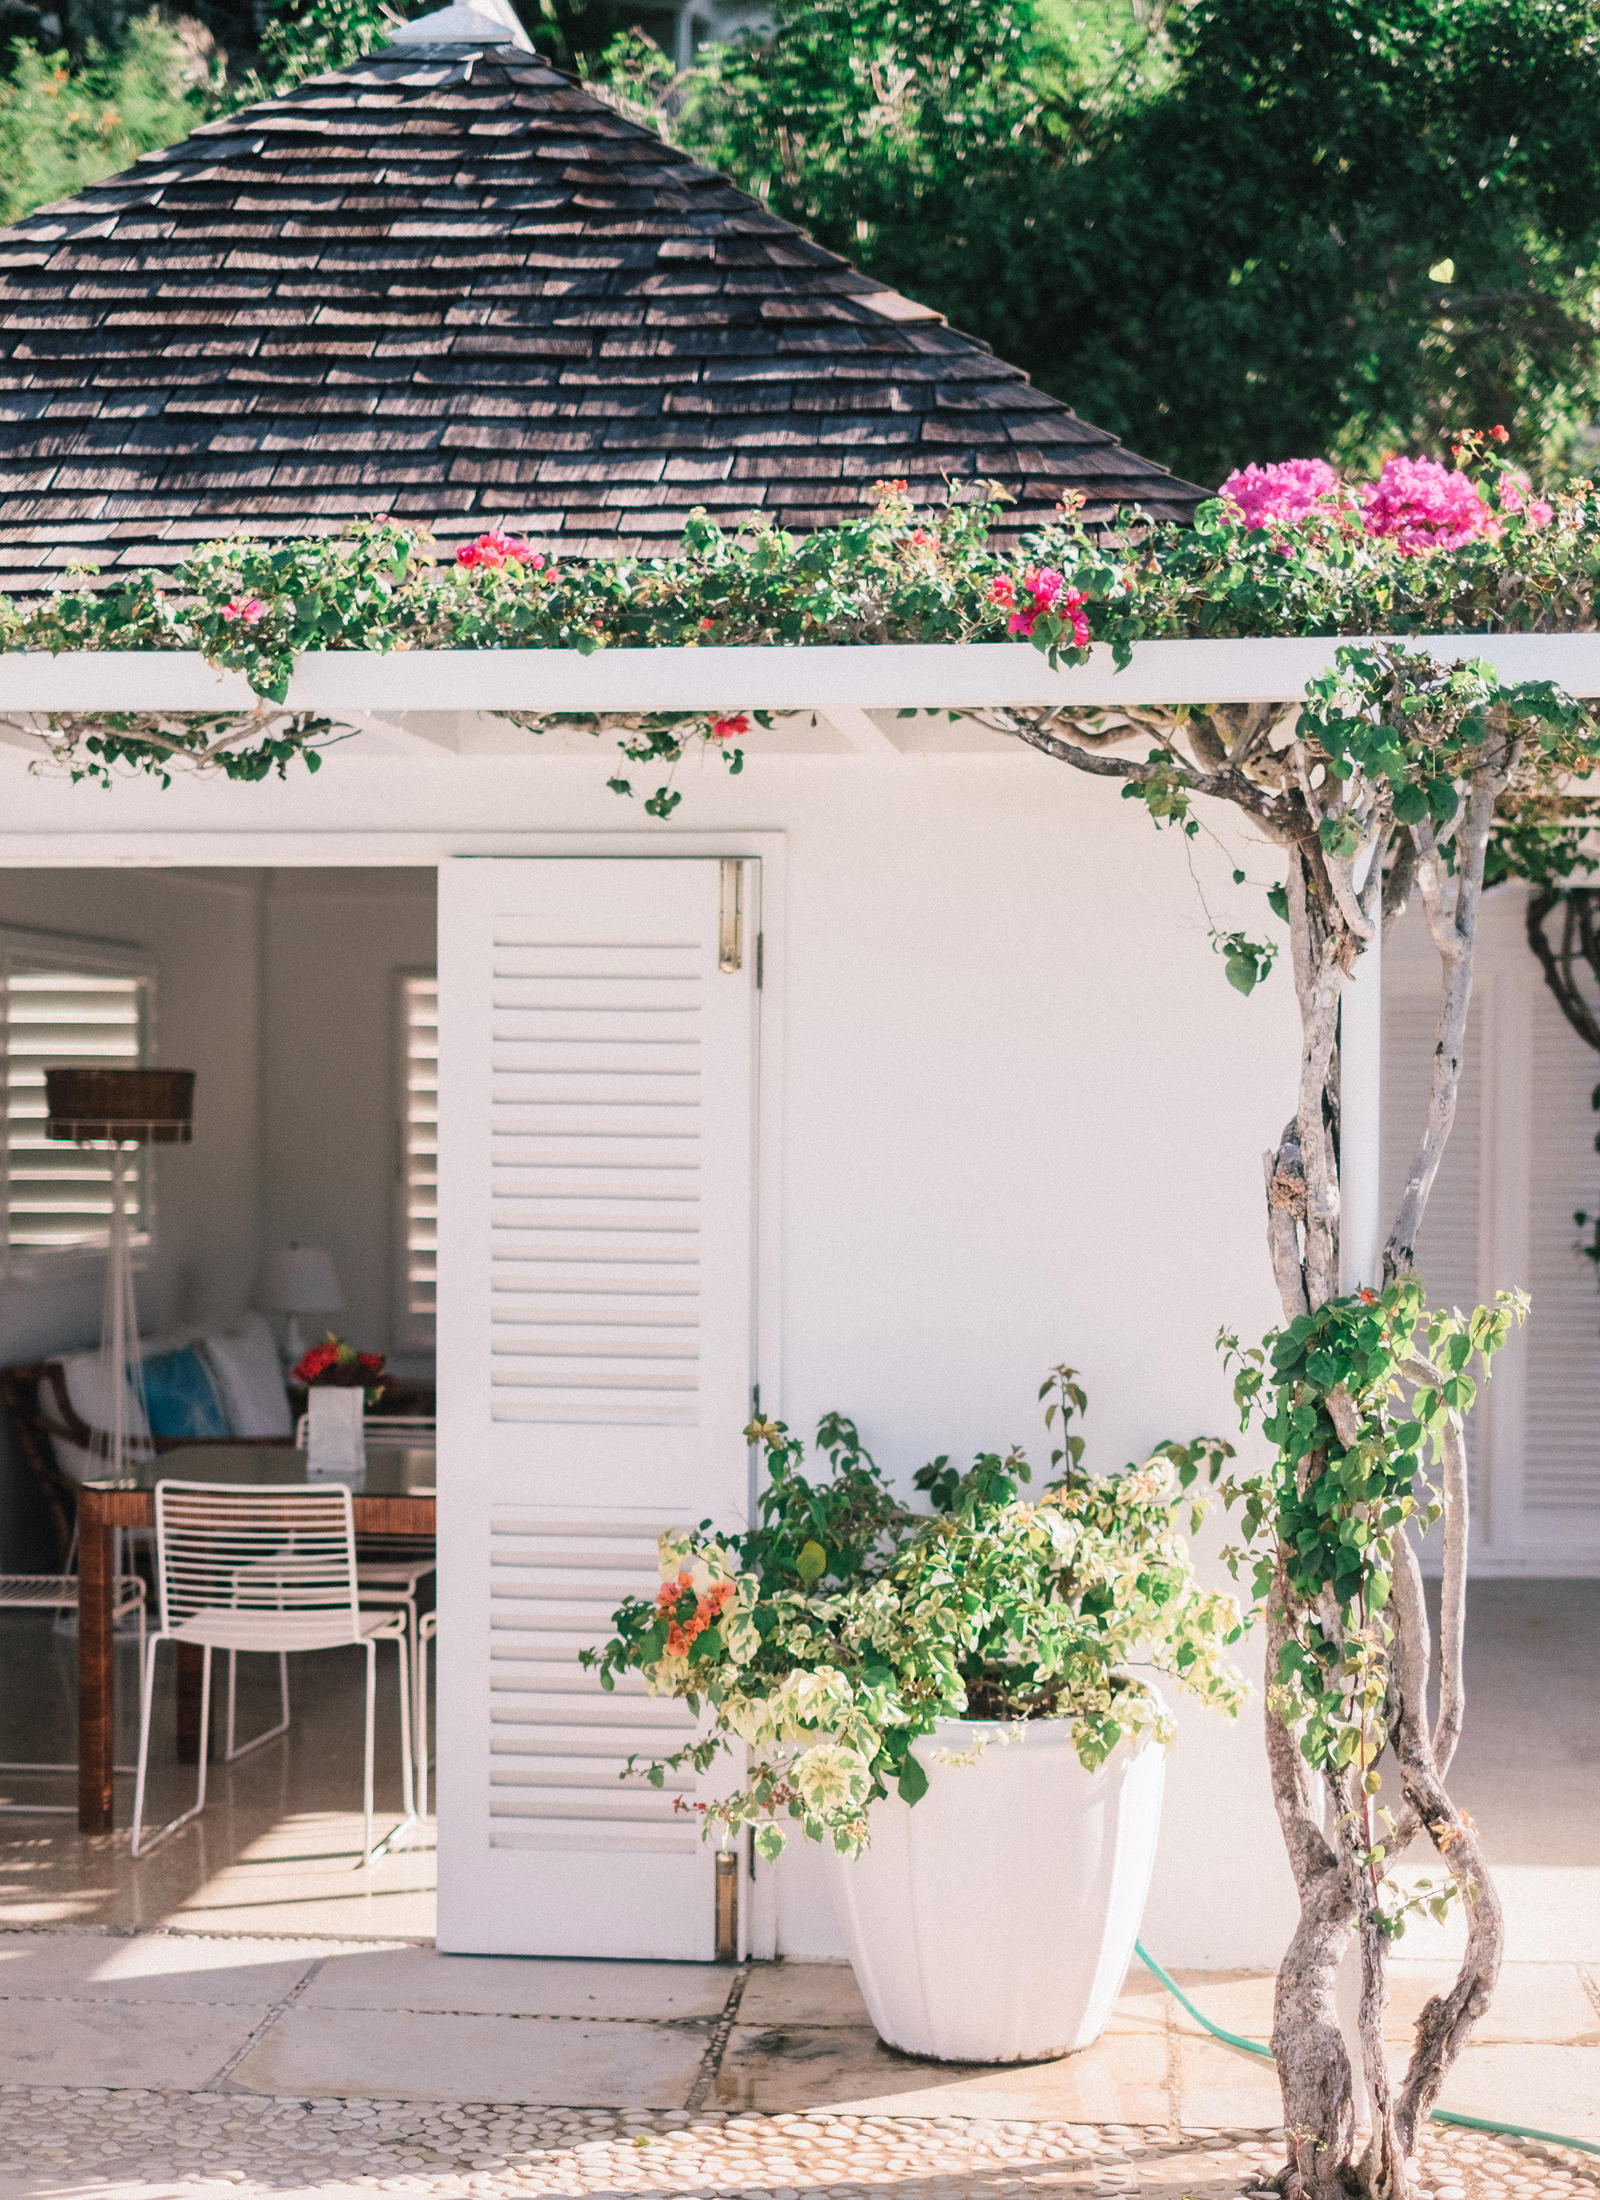 Lifestyle Photography | Atlanta, GA | A beach house behind a trellis with pink flowers.